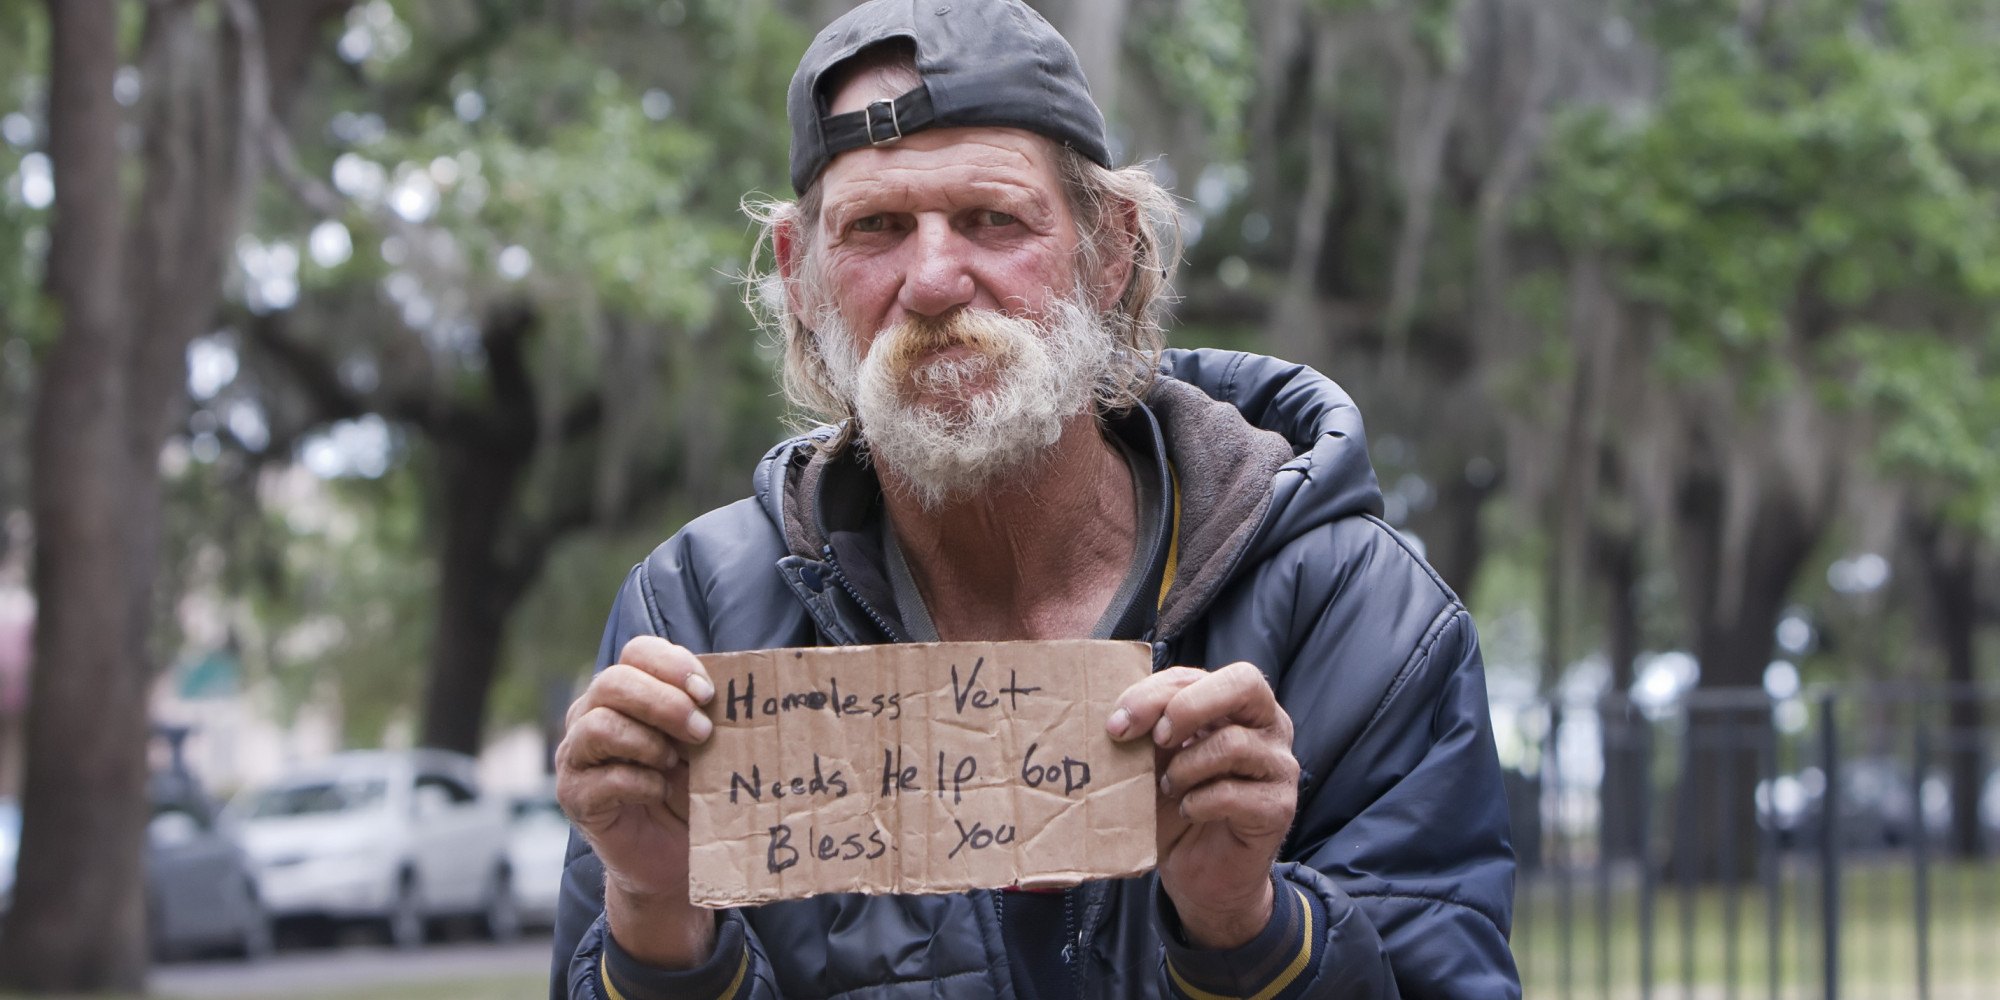 Fort Lauderdale Targets Homeless Population, Outlaws